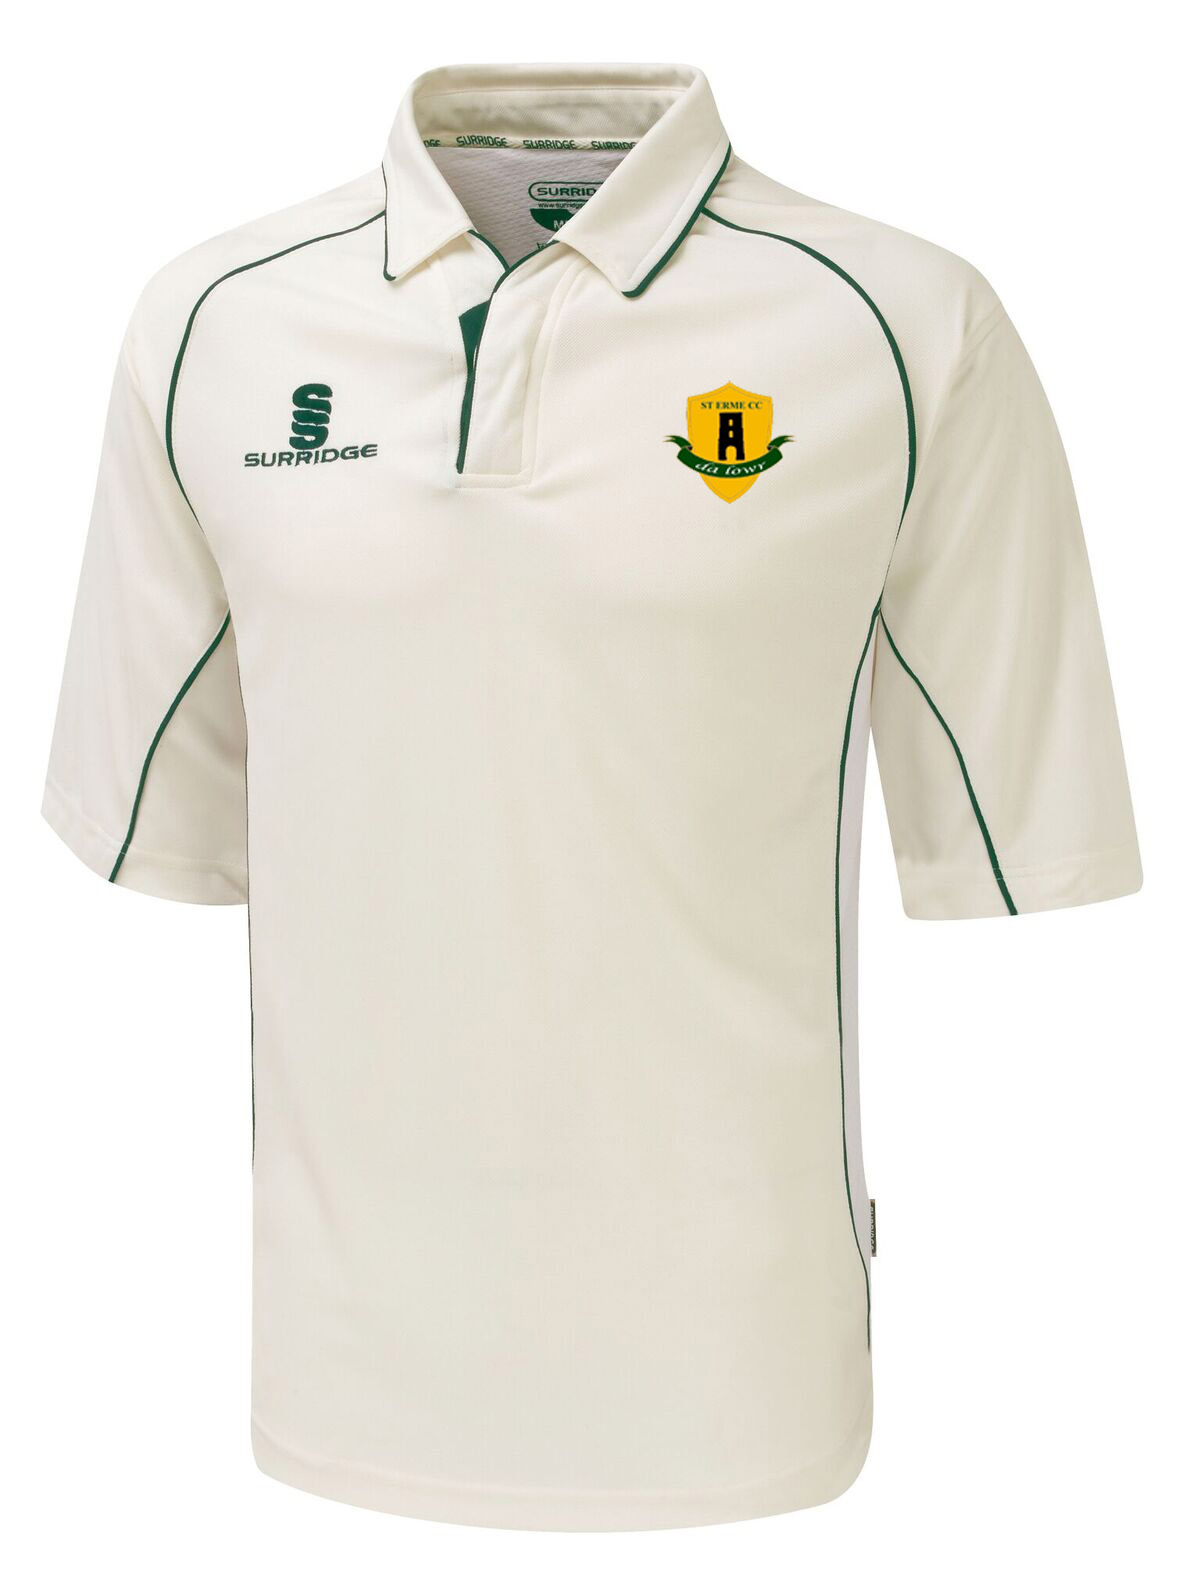 Surridge Performance Shirt-Junior